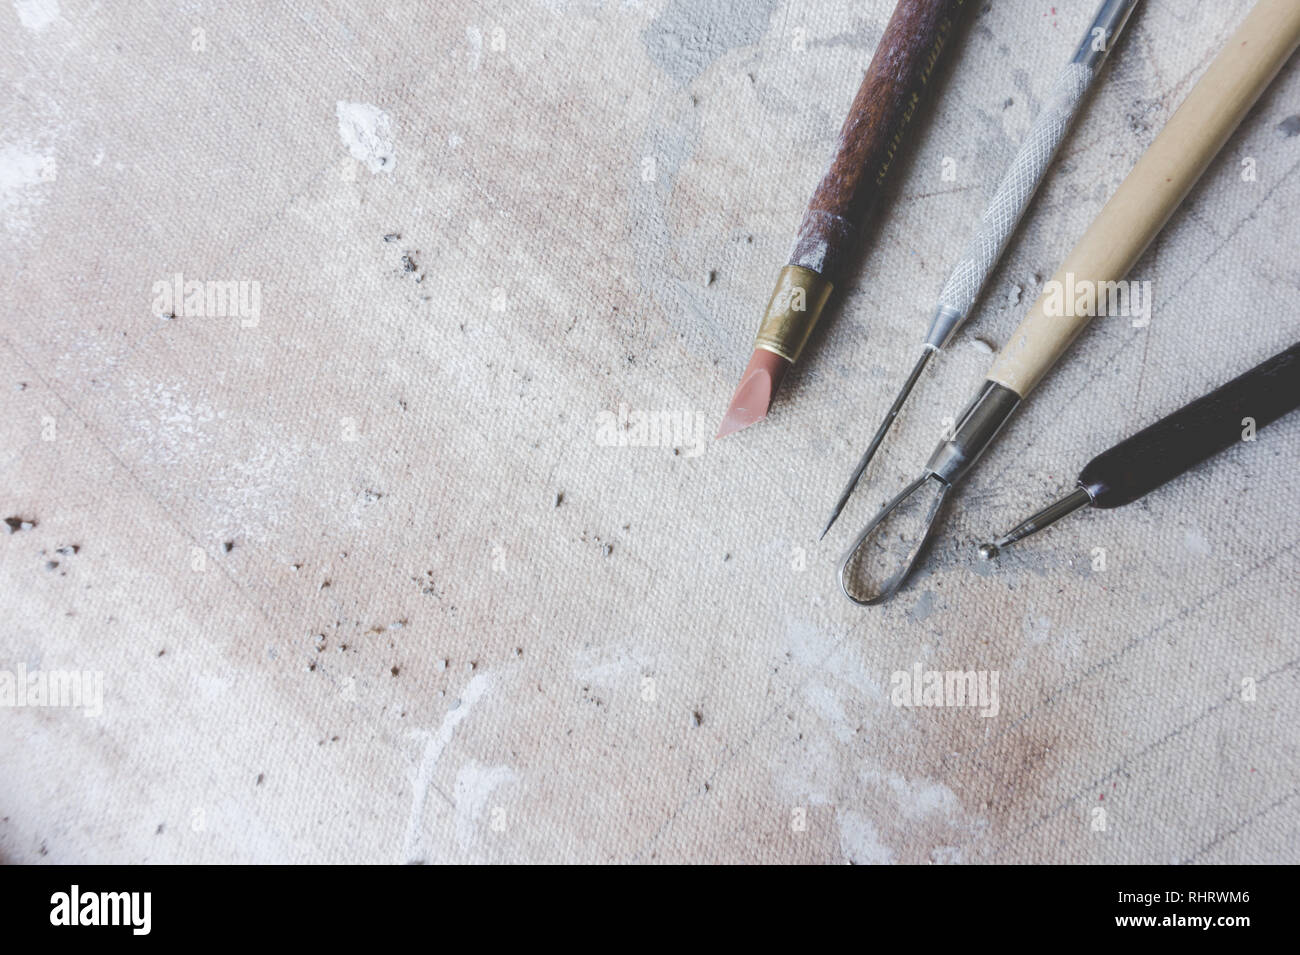 Close up view from above of typical ceramics tools / art supplies in a ceramic art studio - Stock Image